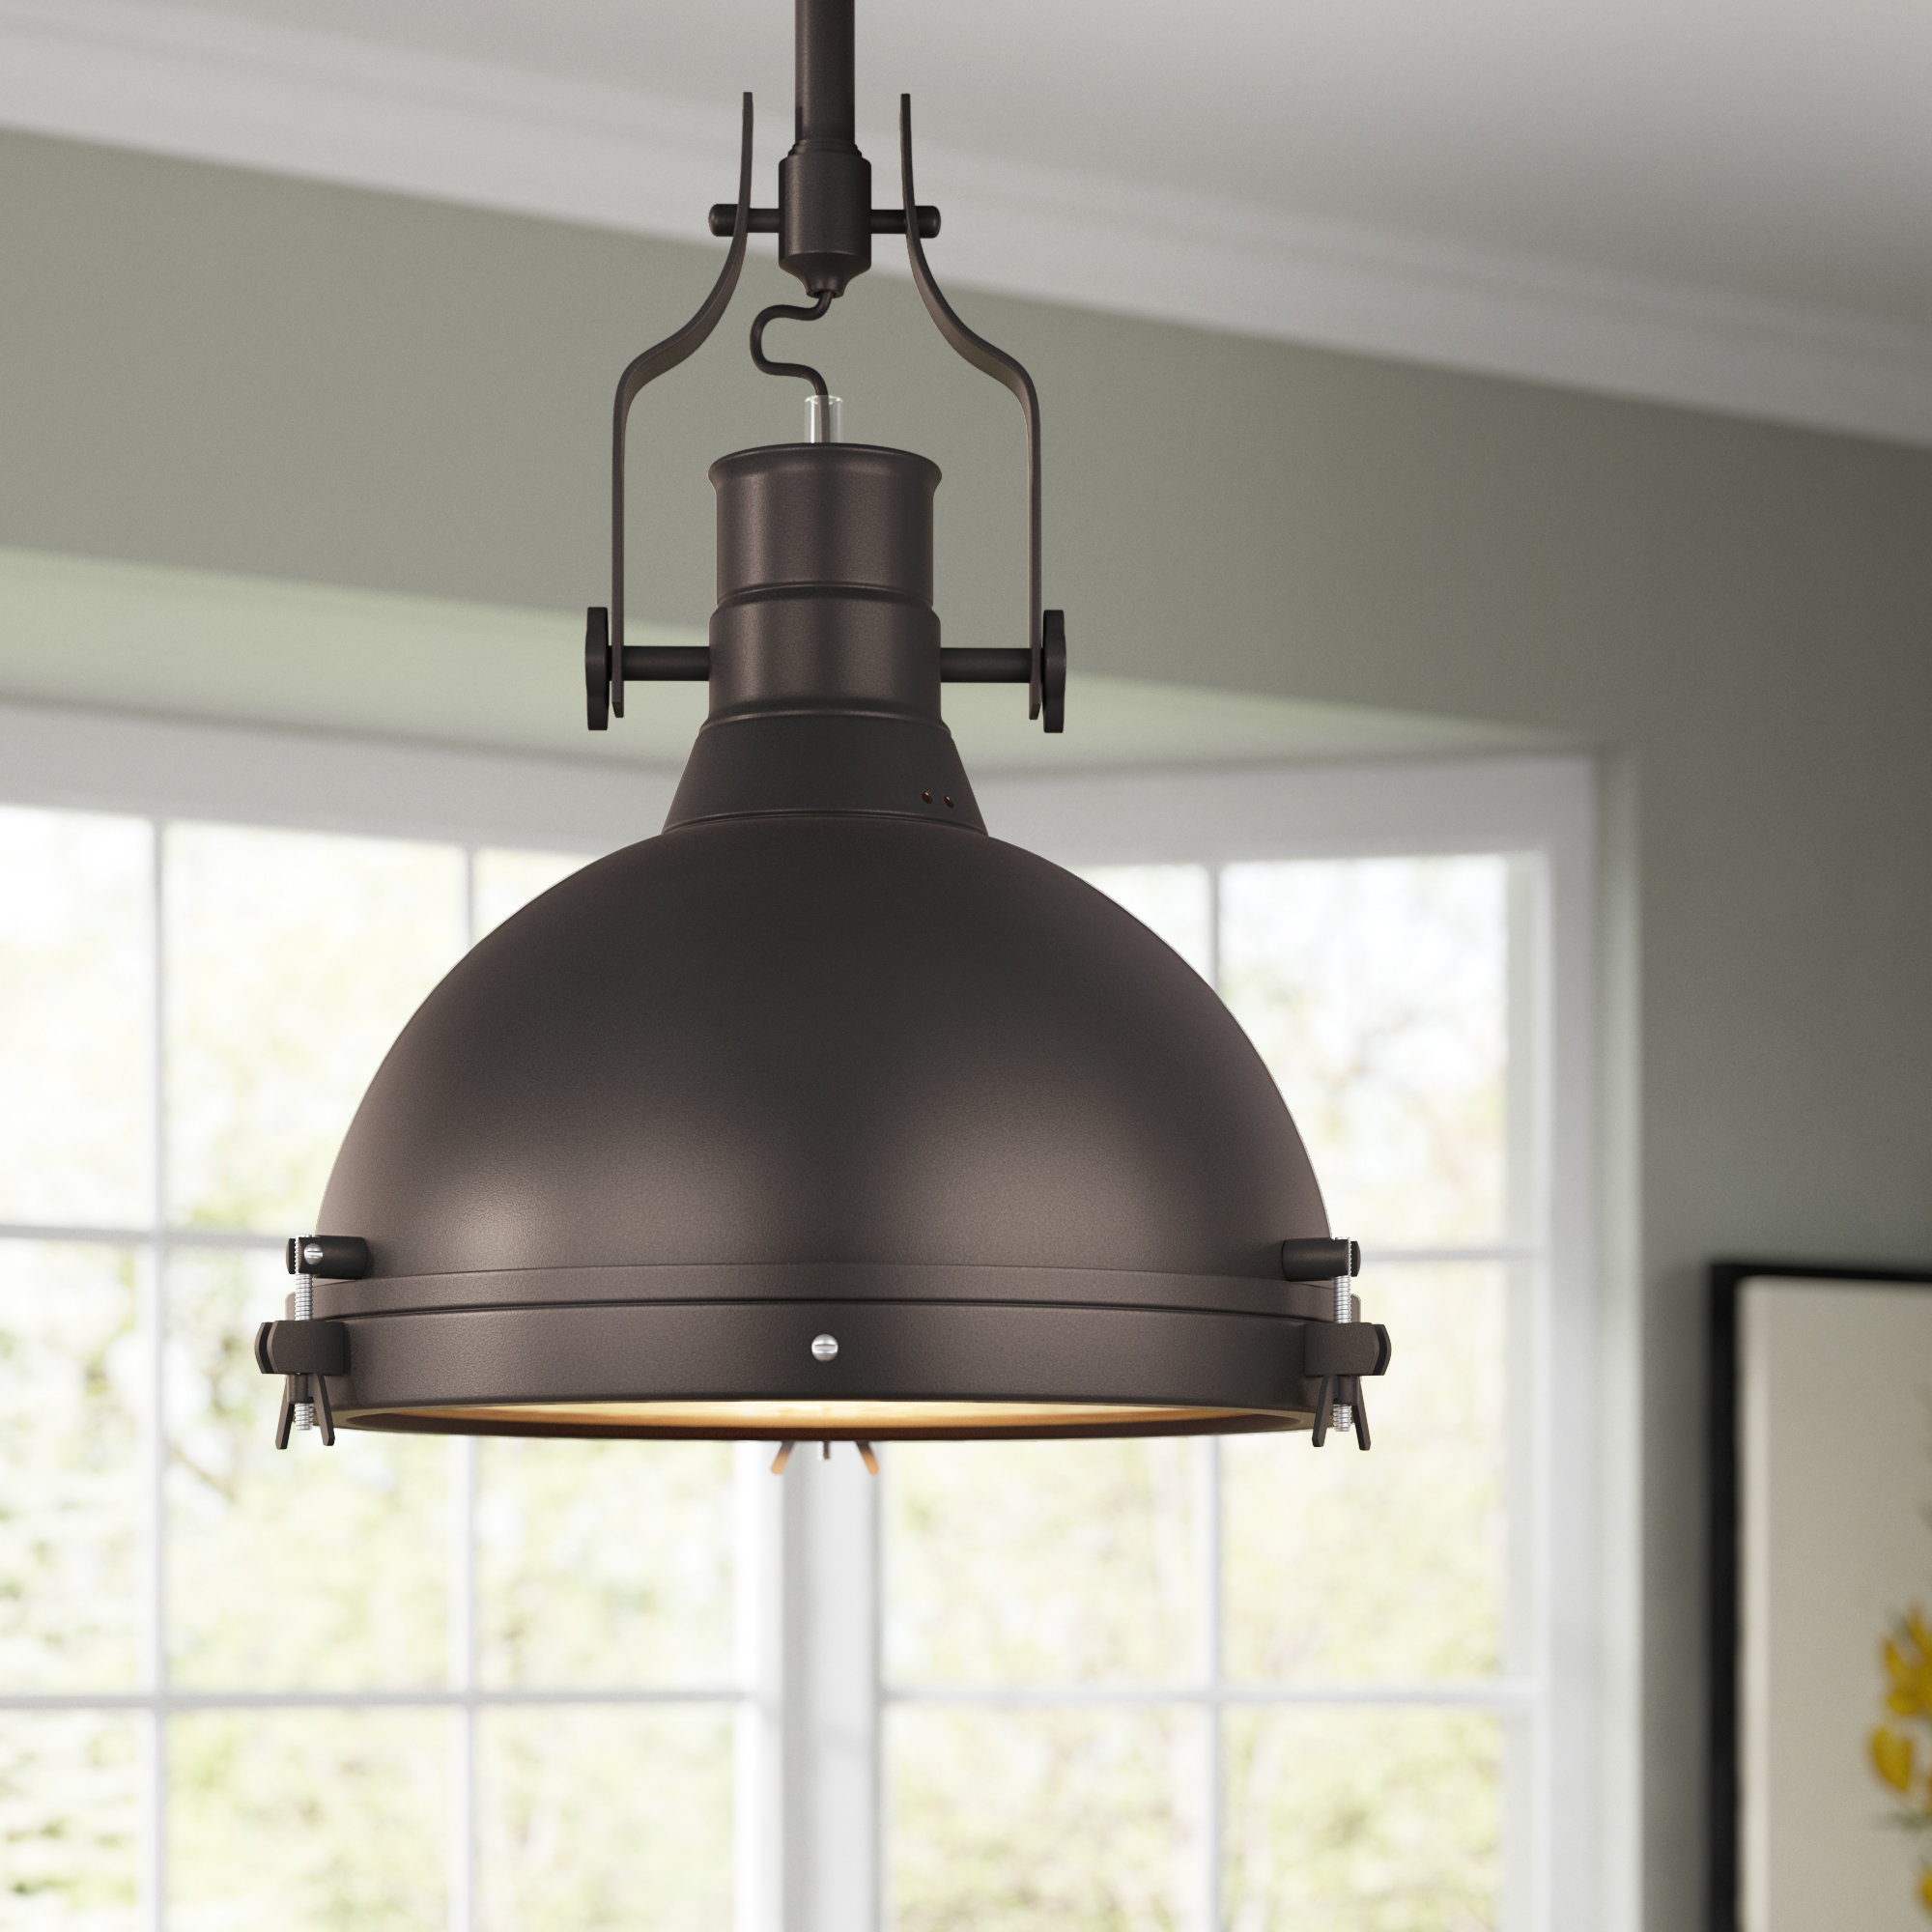 Wamblee 1 Light Single Dome Pendant Throughout Current Priston 1 Light Single Dome Pendants (Gallery 11 of 20)